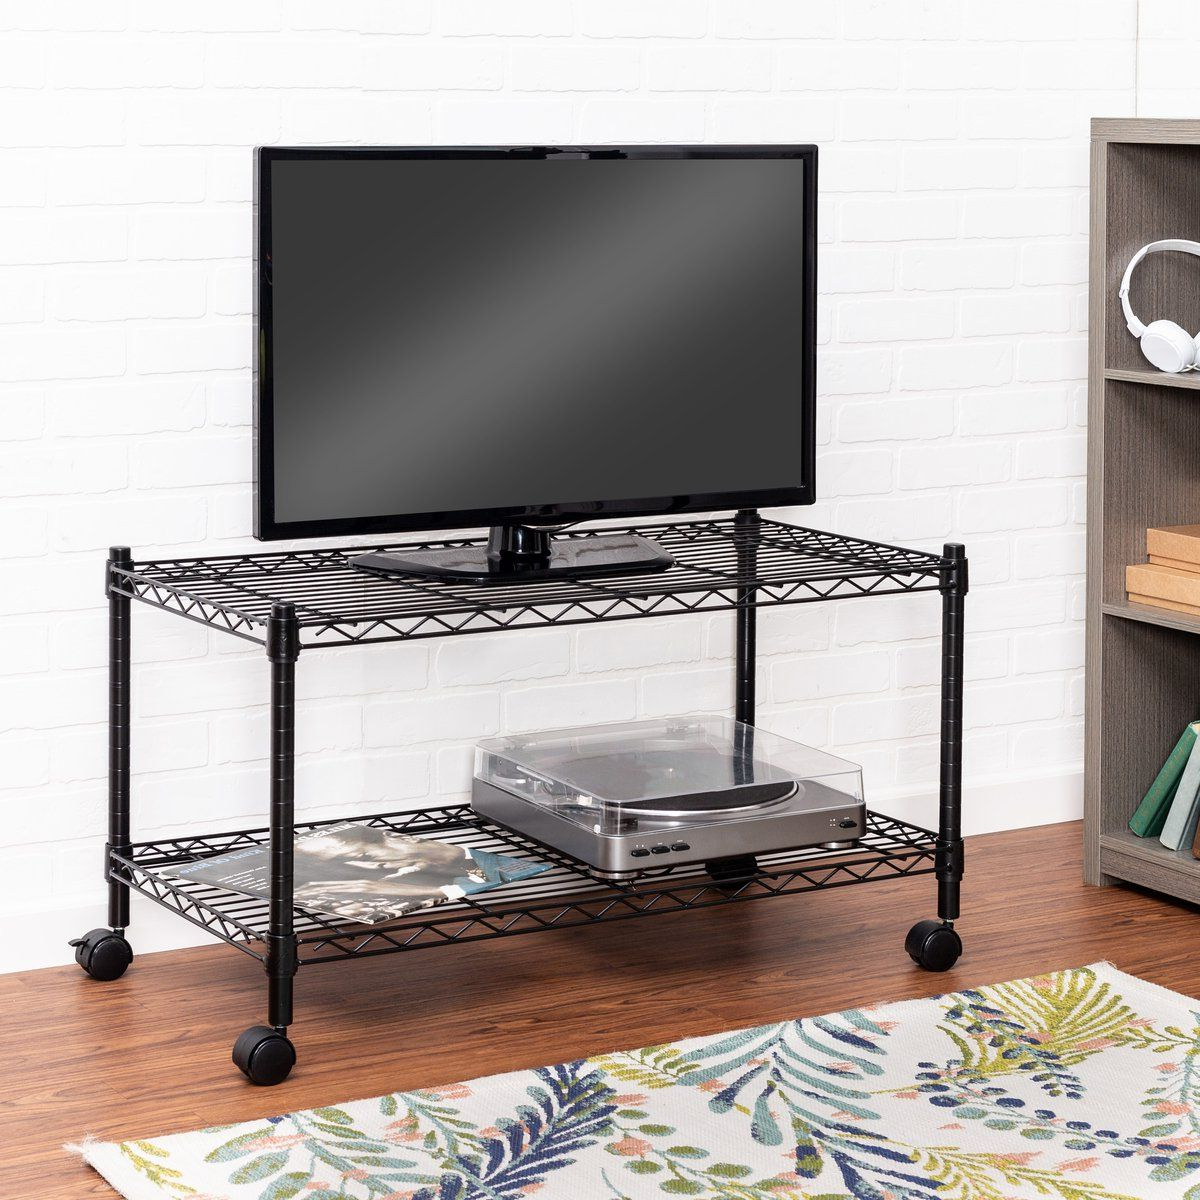 2 Tier Tv Stand And Media Cart, Black | Home Gathering Intended For Rolling Tv Stands With Wheels With Adjustable Metal Shelf (View 5 of 20)